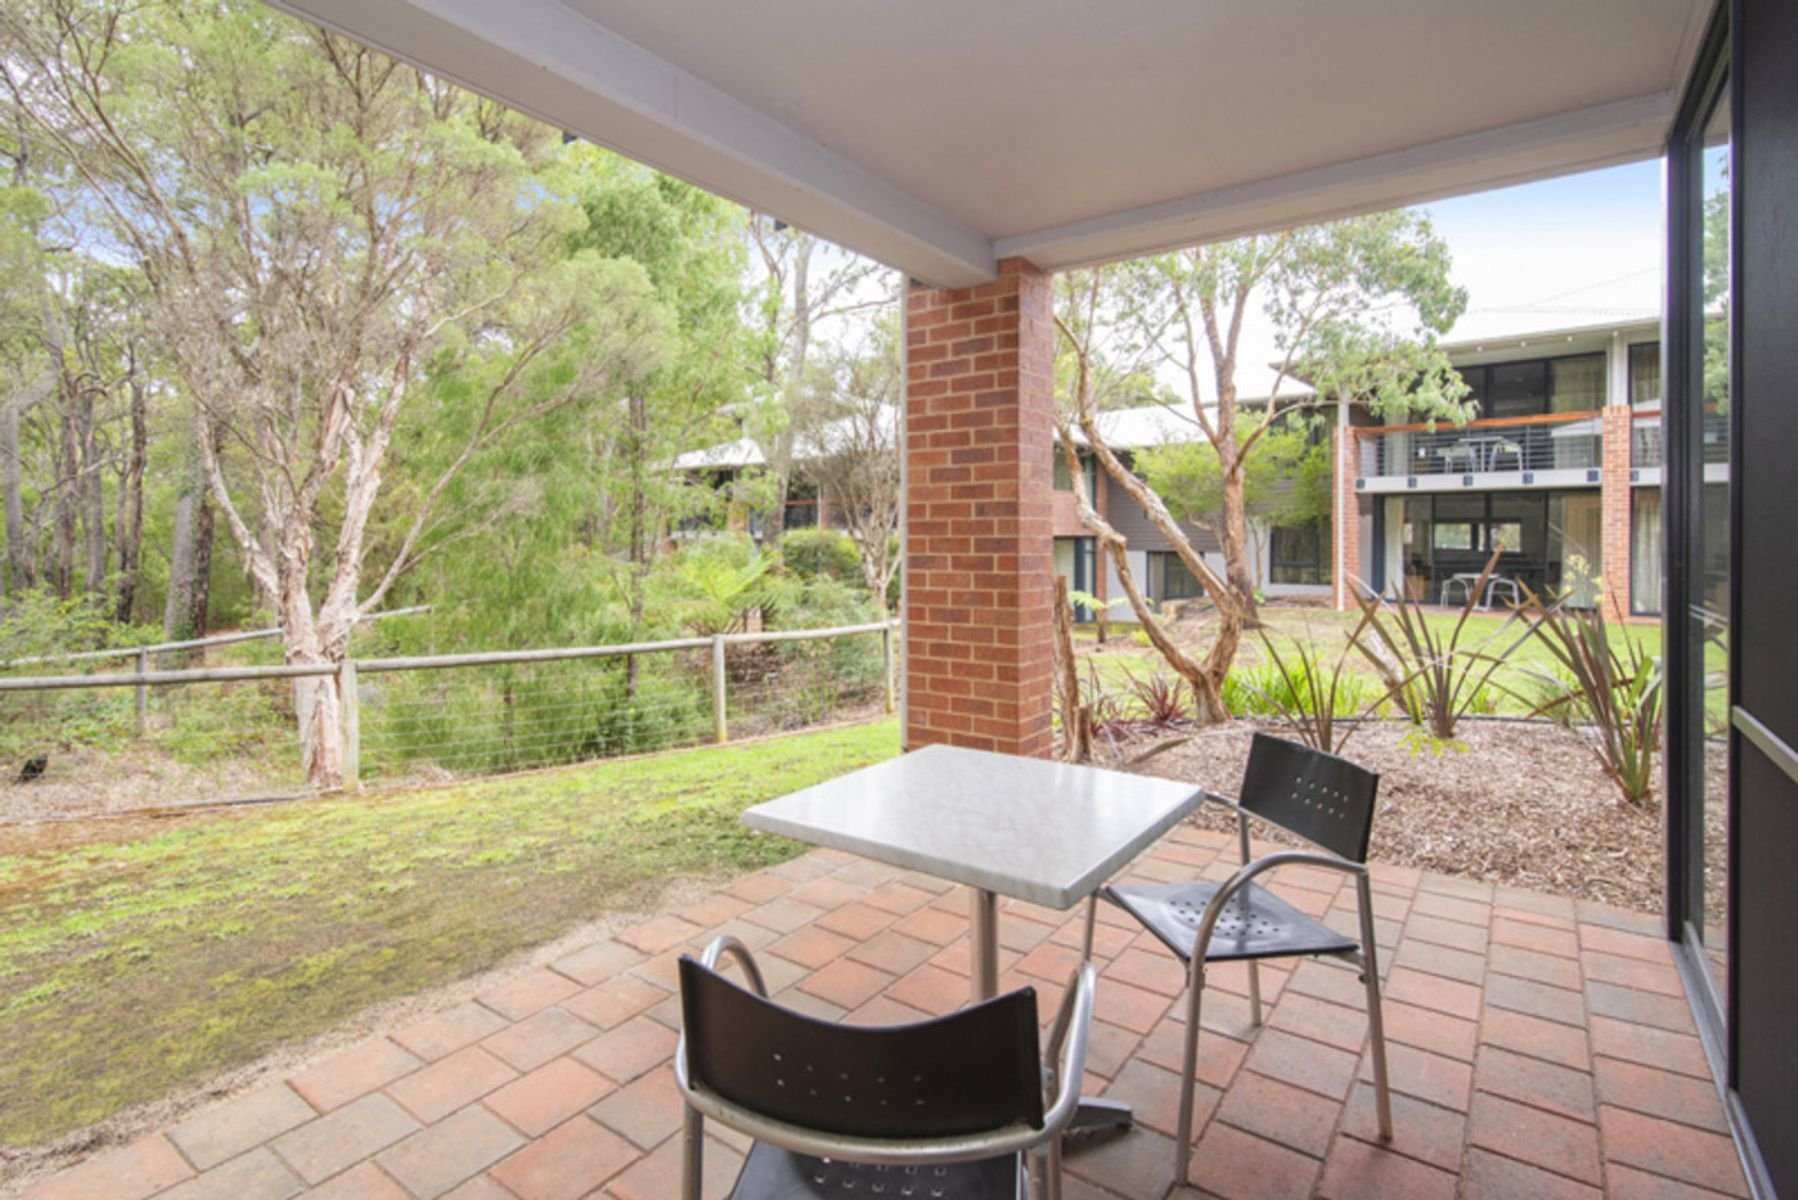 17/6 Tunbridge Street, Margaret River, WA 6285